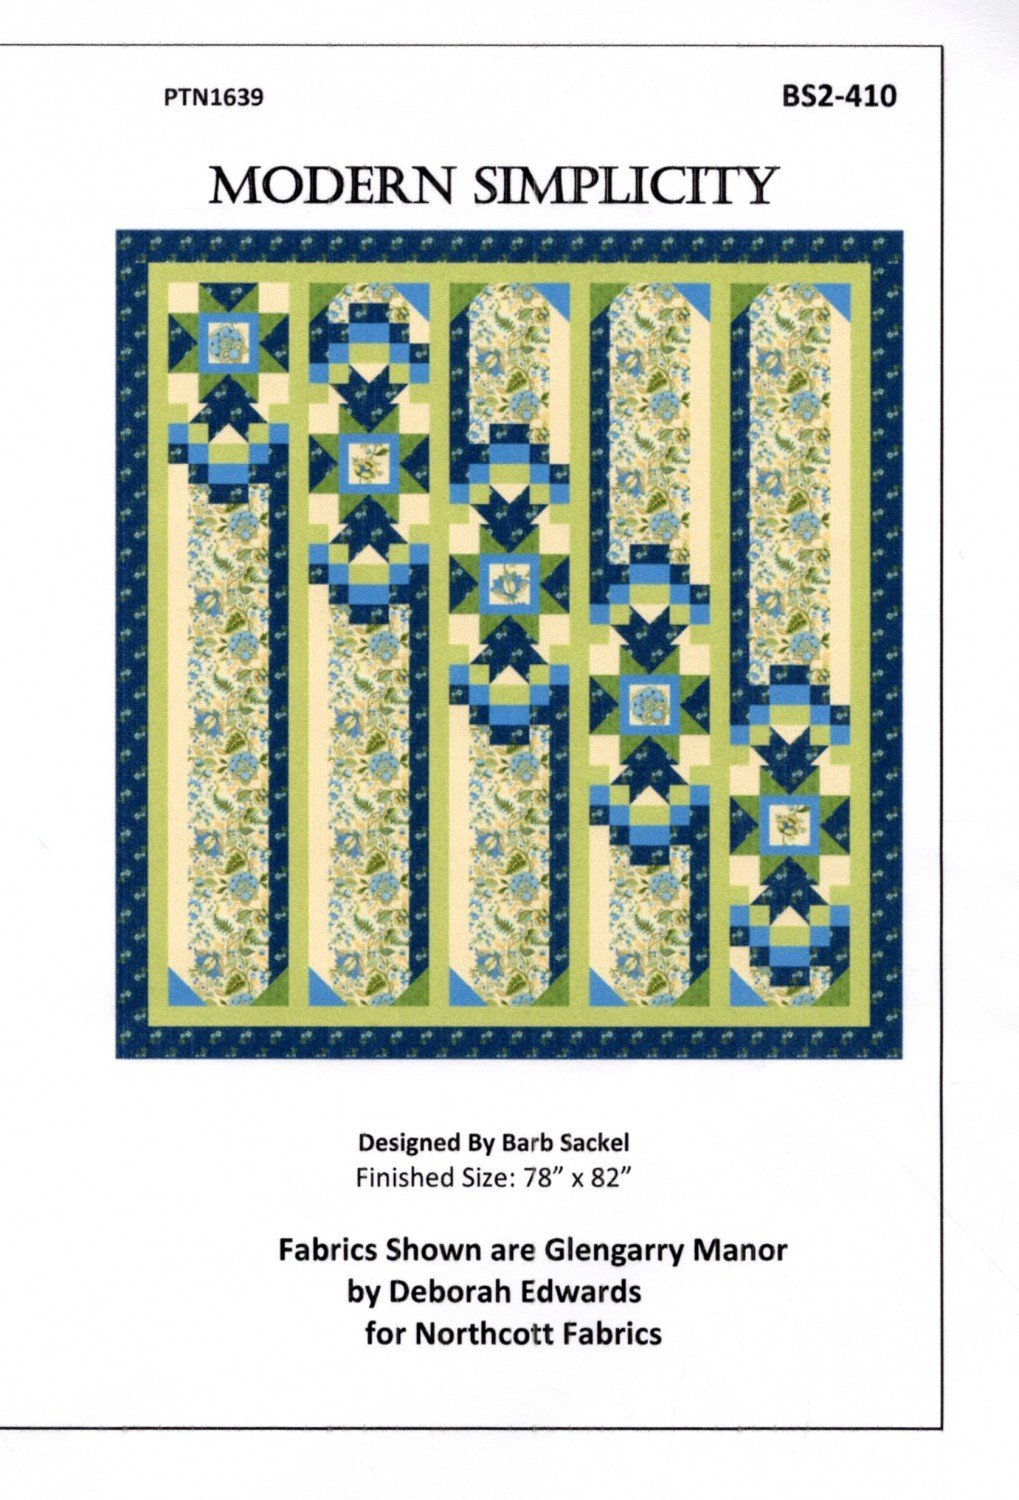 Modern Simplicity, Quilting Kit, Pattern by Barb Sackel